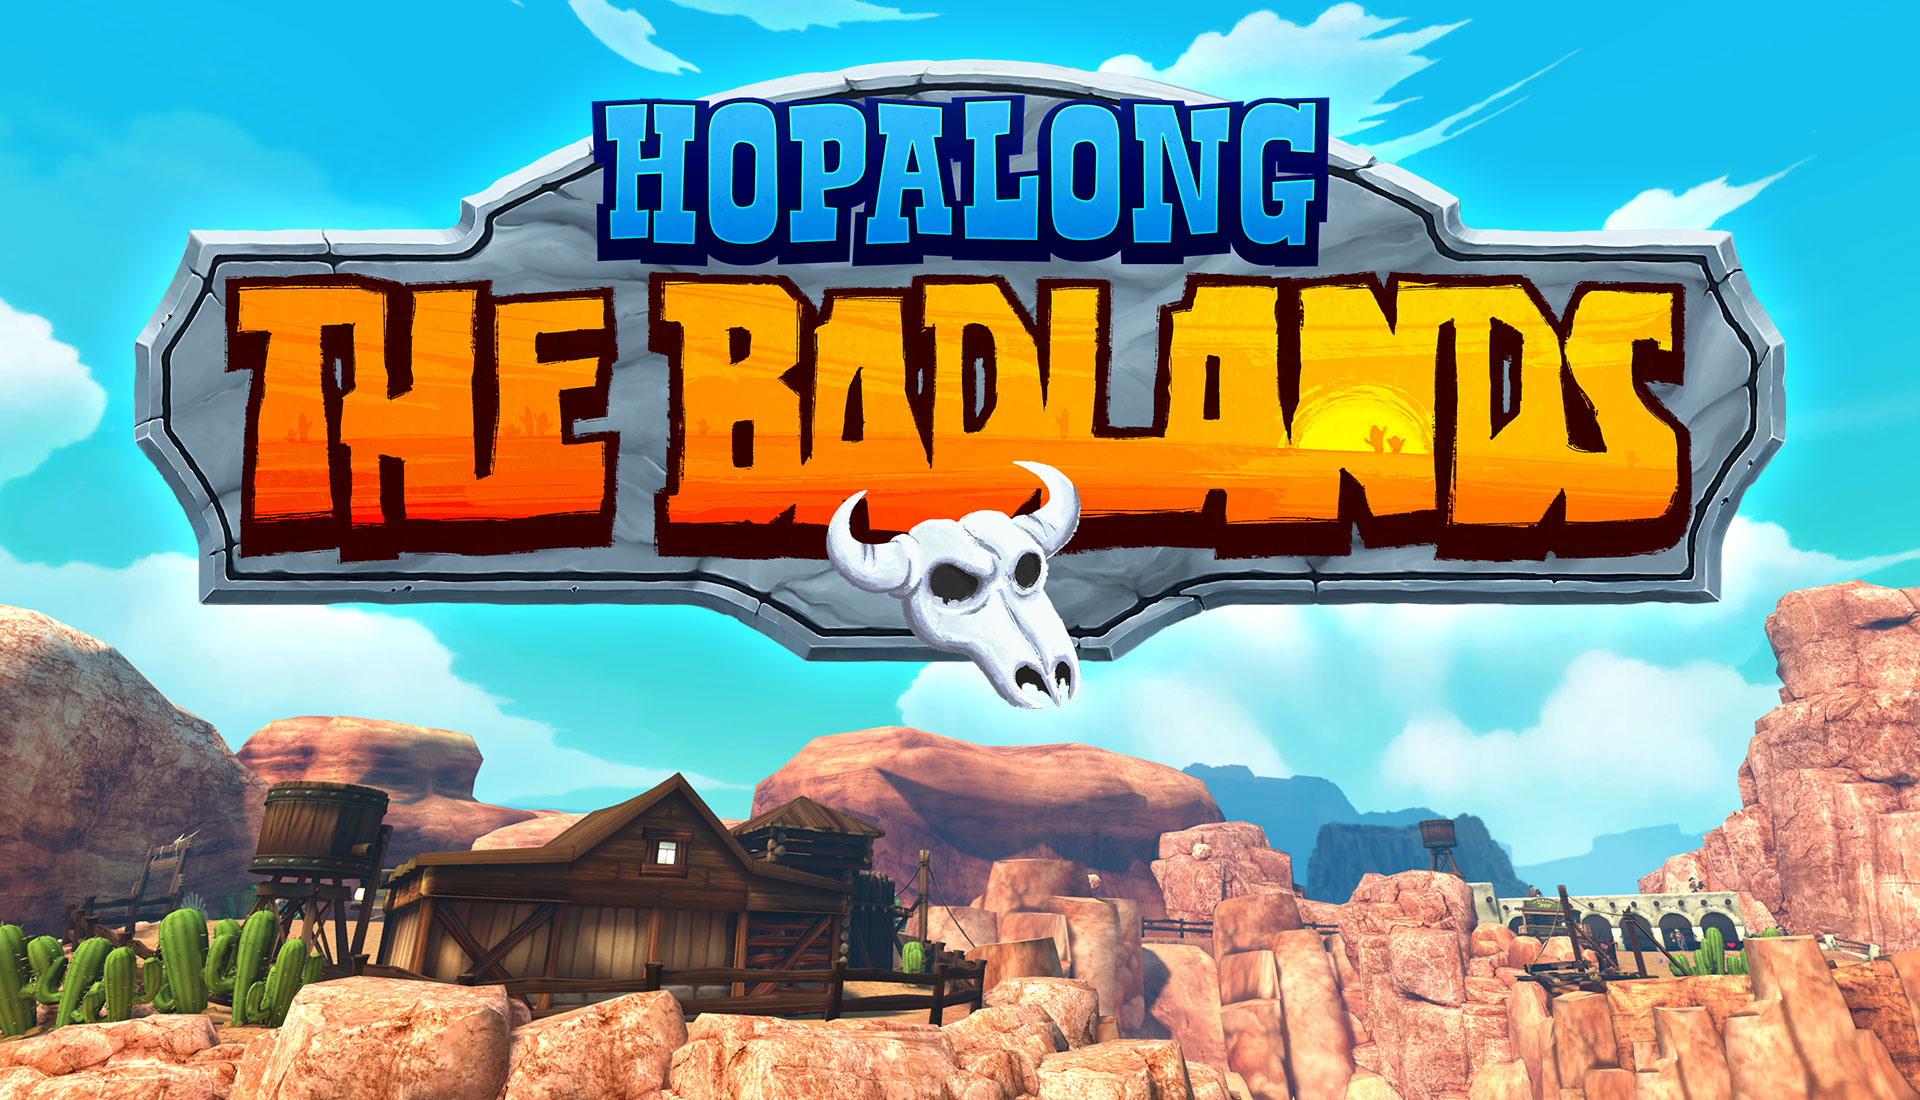 Hopalong the Badlands